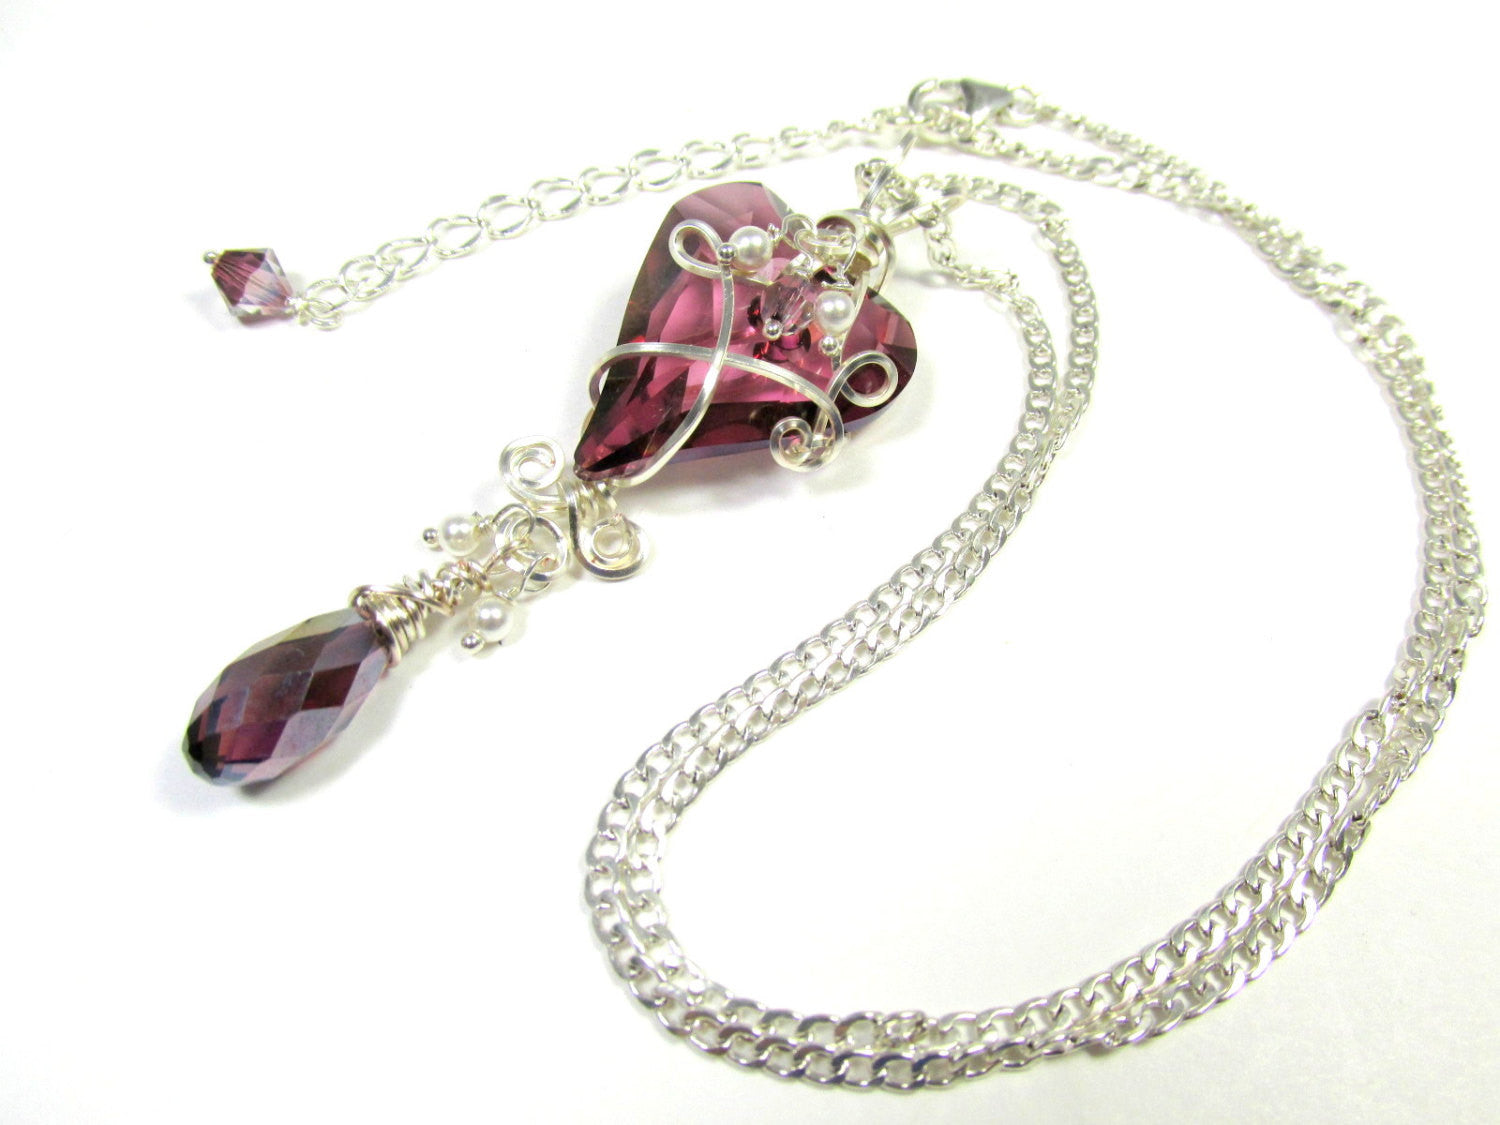 Plum Lilac Shadow Swarovski Wild Heart Necklace and Earring Set in Sterling Silver - Odyssey Creations